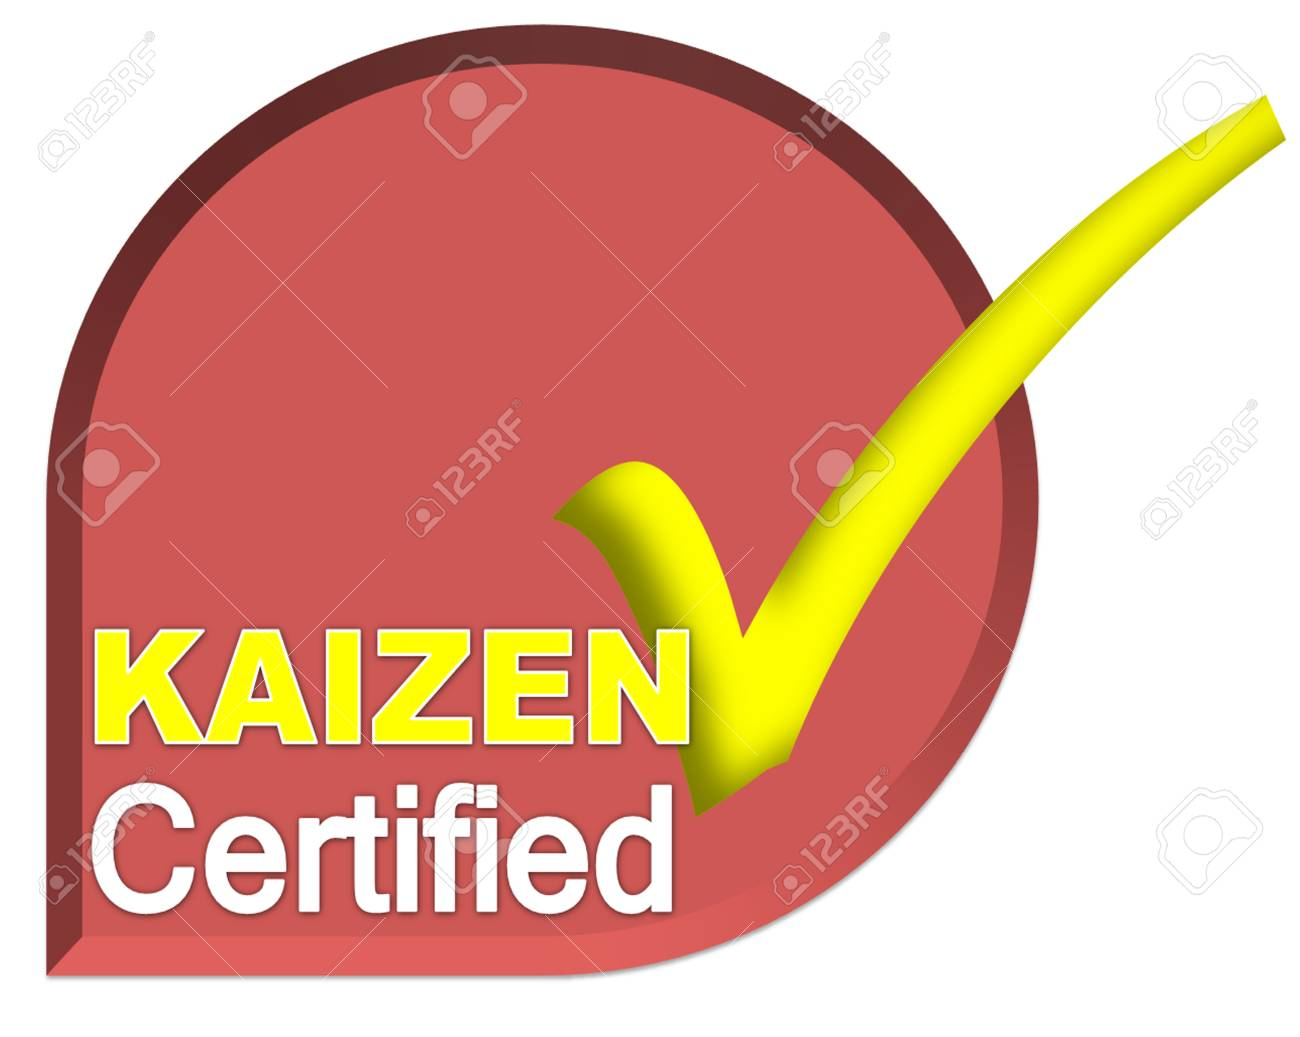 Certificate logo or symbol of kaizen system on dark red color stock certificate logo or symbol of kaizen system on dark red color stock photo 28386467 1betcityfo Gallery